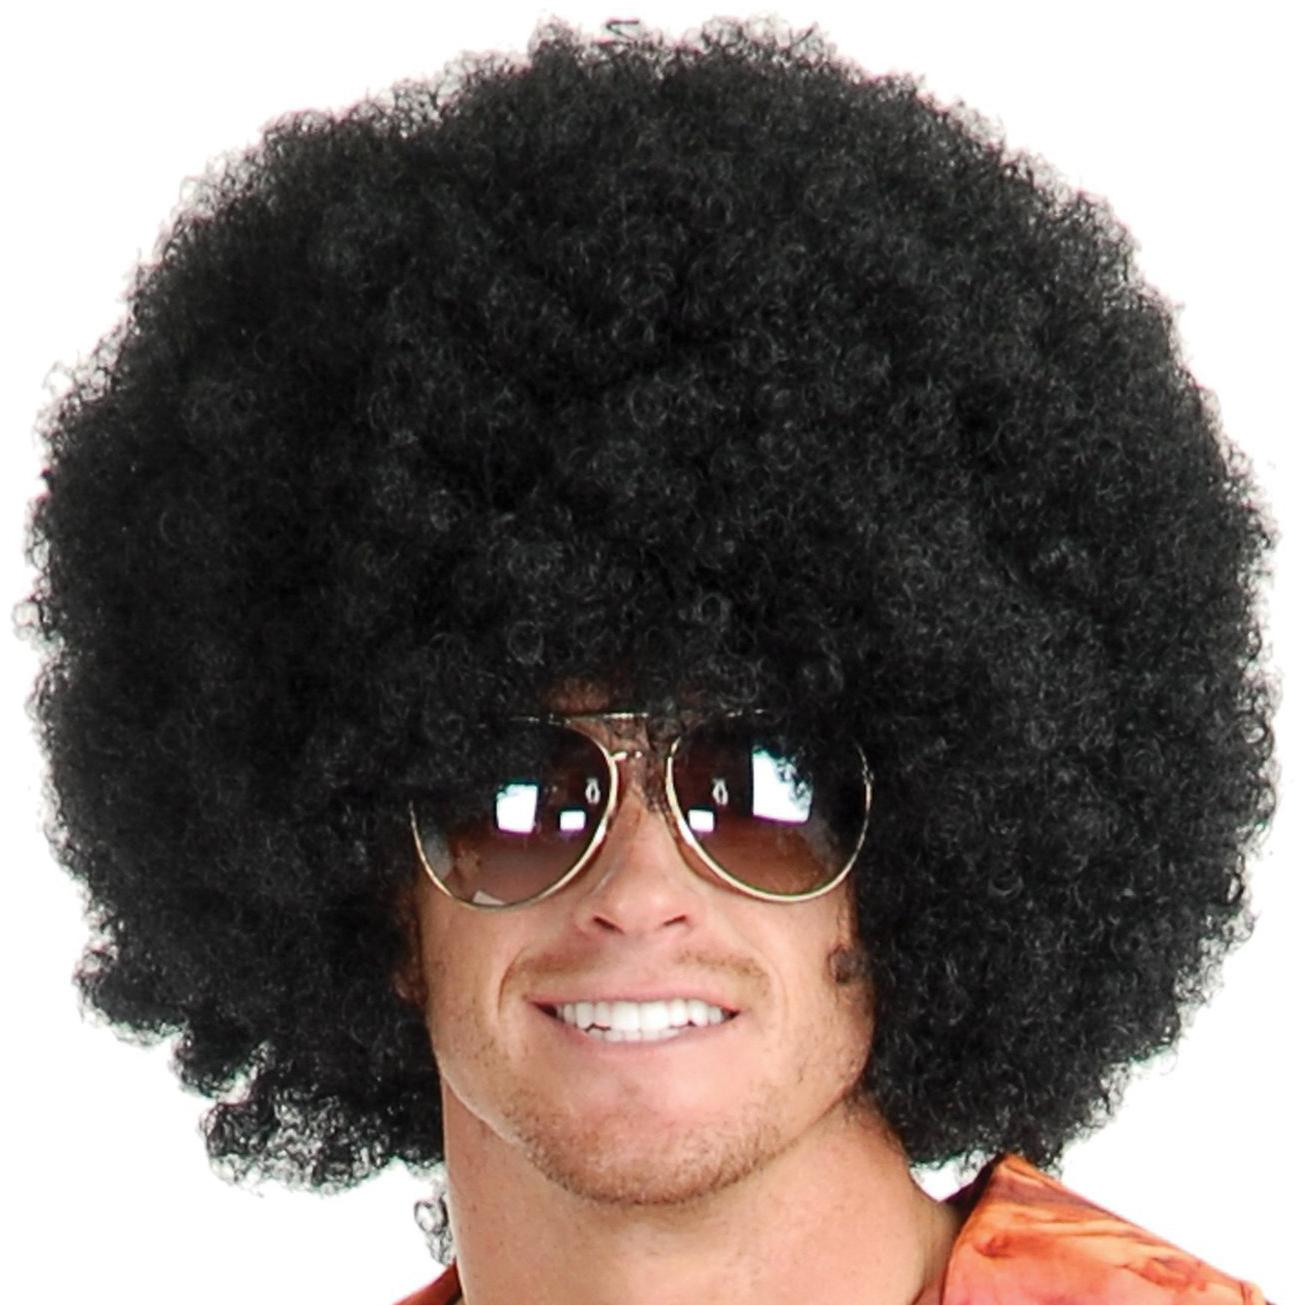 1 afro hair from black or brown wigs fancy costume funny wig party